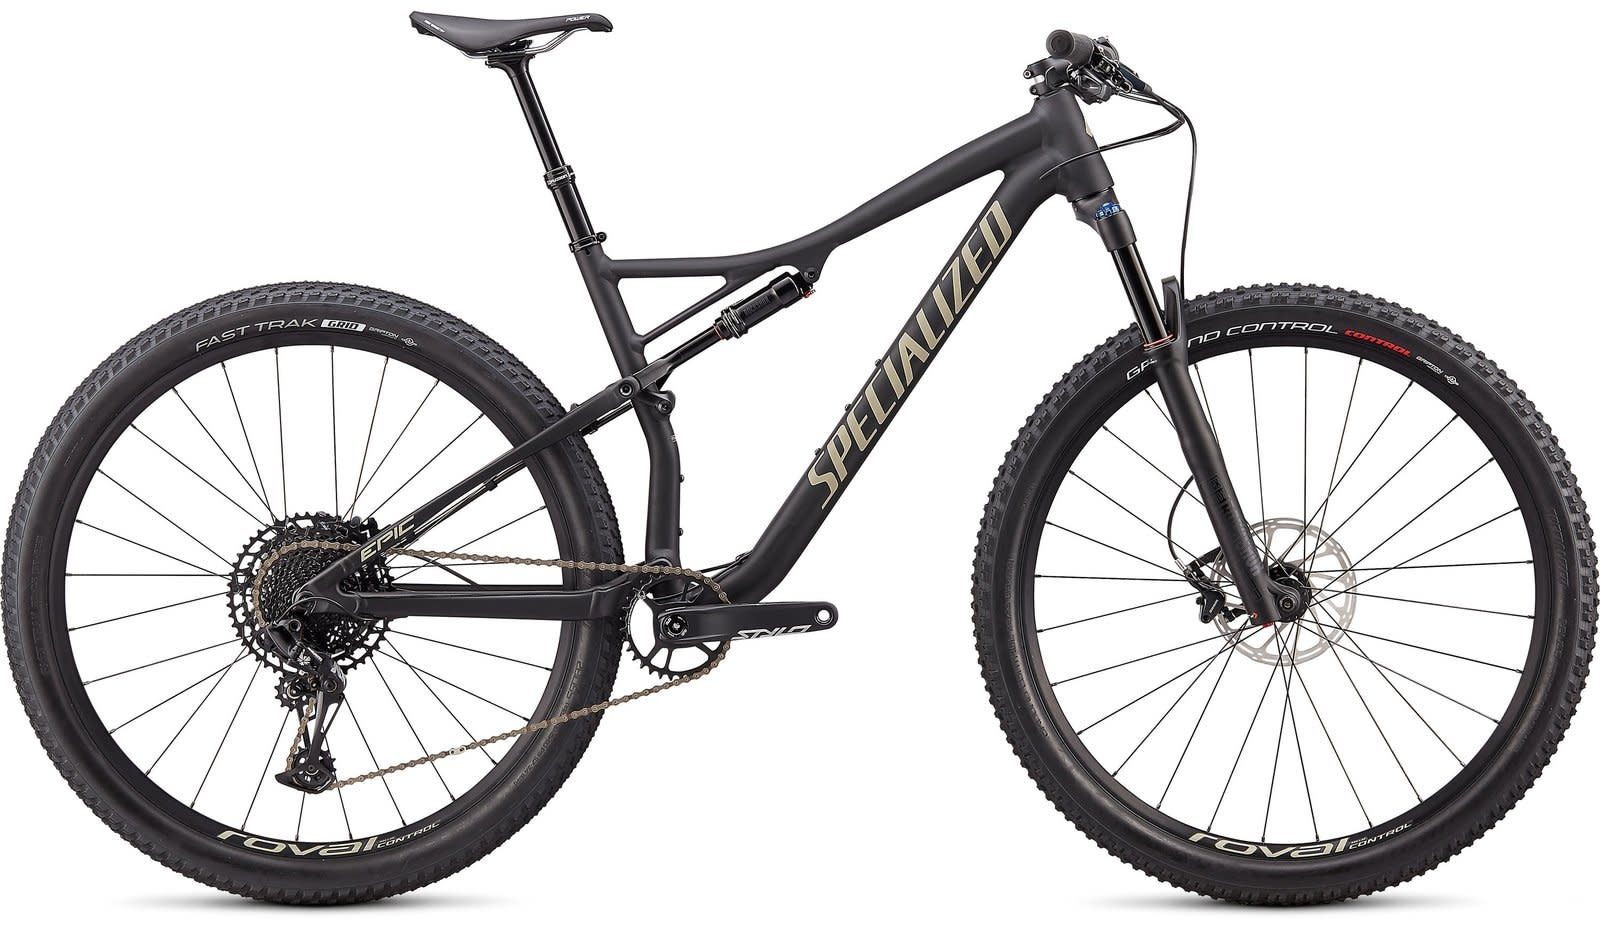 2020 Epic Comp Evo Alloy